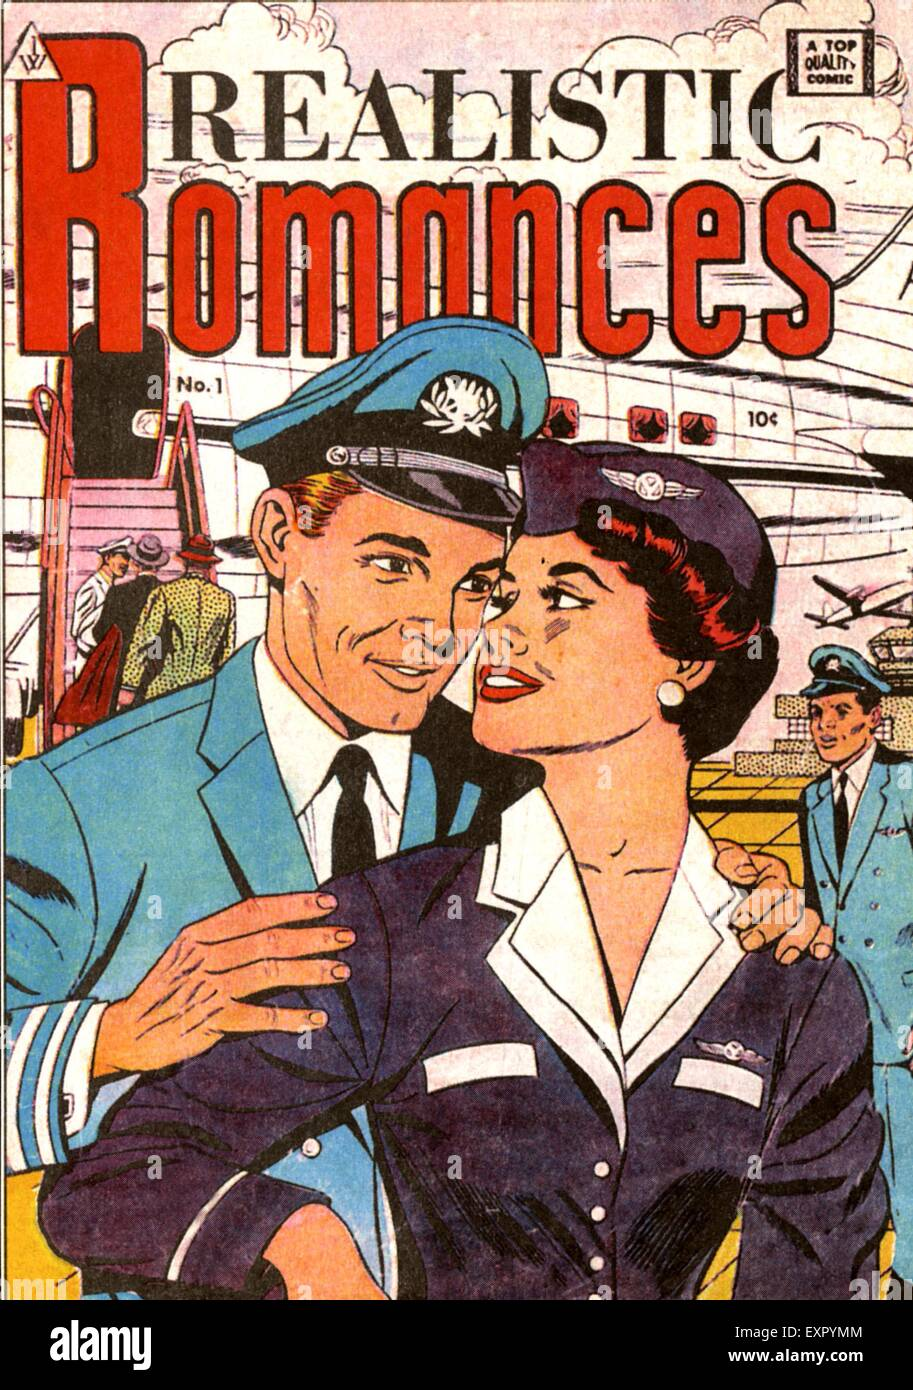 1980s USA Realistic Romance Comic/ Annual Cover - Stock Image